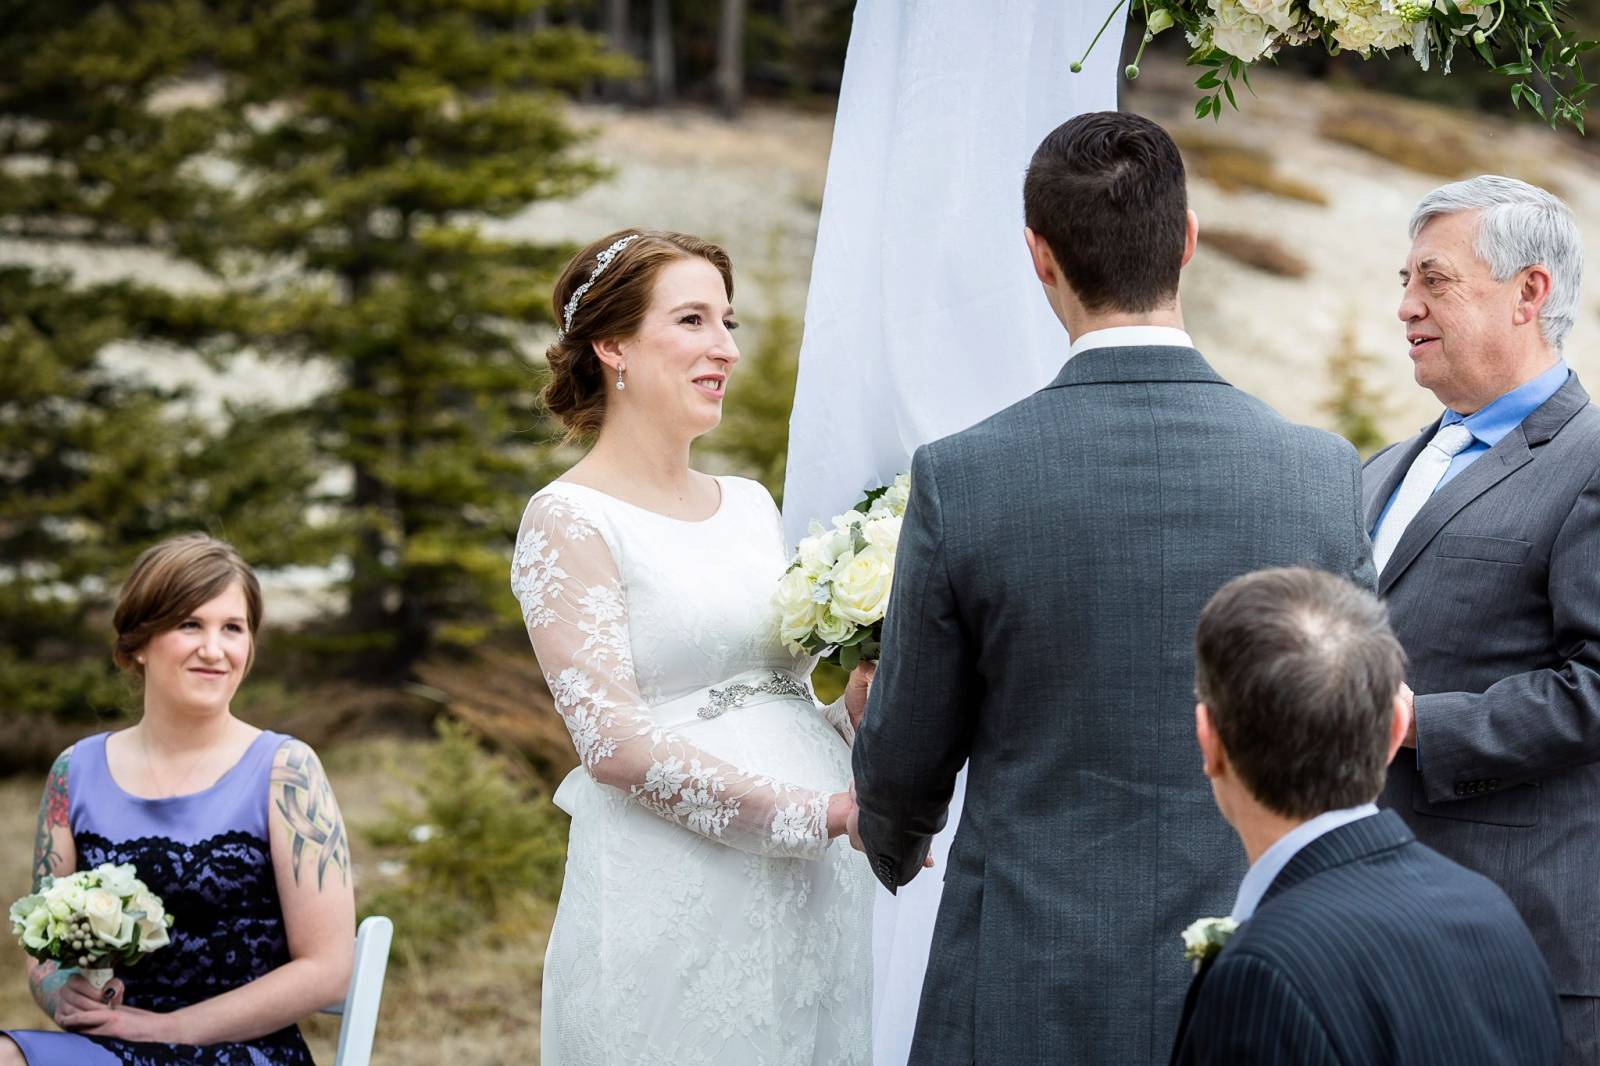 Outdoor Winter Wedding Photography: Romantic Outdoor Winter Wedding At Two Jack Lake, Banff